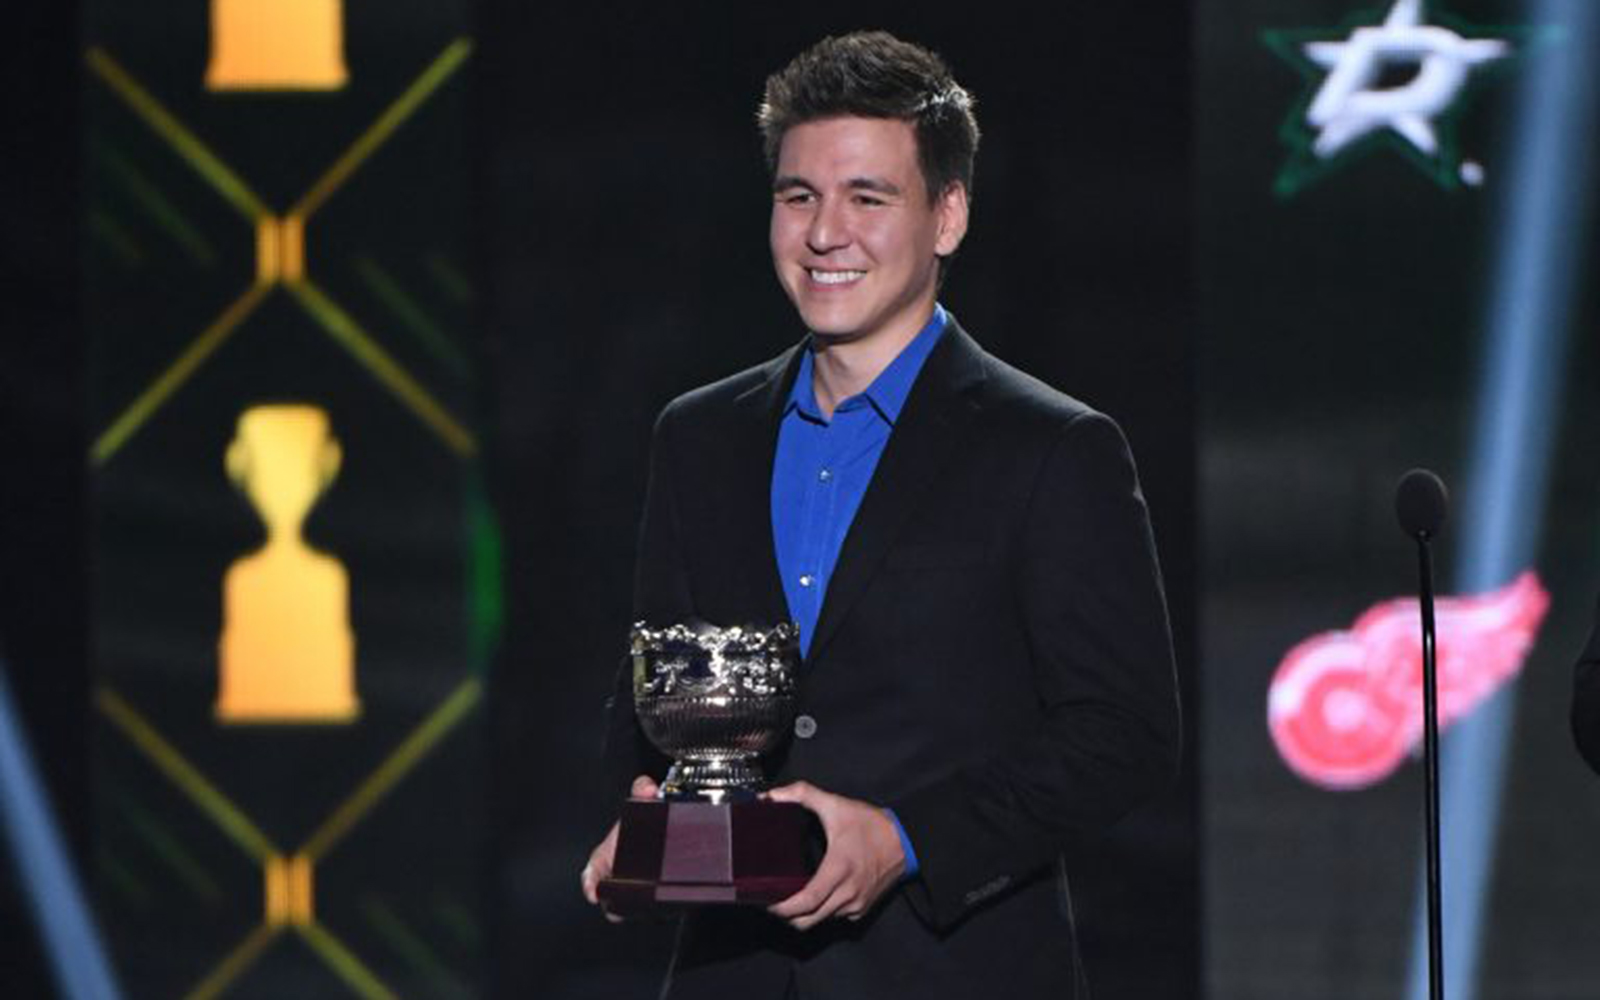 James Holzhauer, 'Jeopardy!' champion and professional sports gambler, prepares to present a trophy at the 2019 NHL Awards in Las Vegas, Nevada, on June 19, 2019. (Ethan Miller/Getty Images)